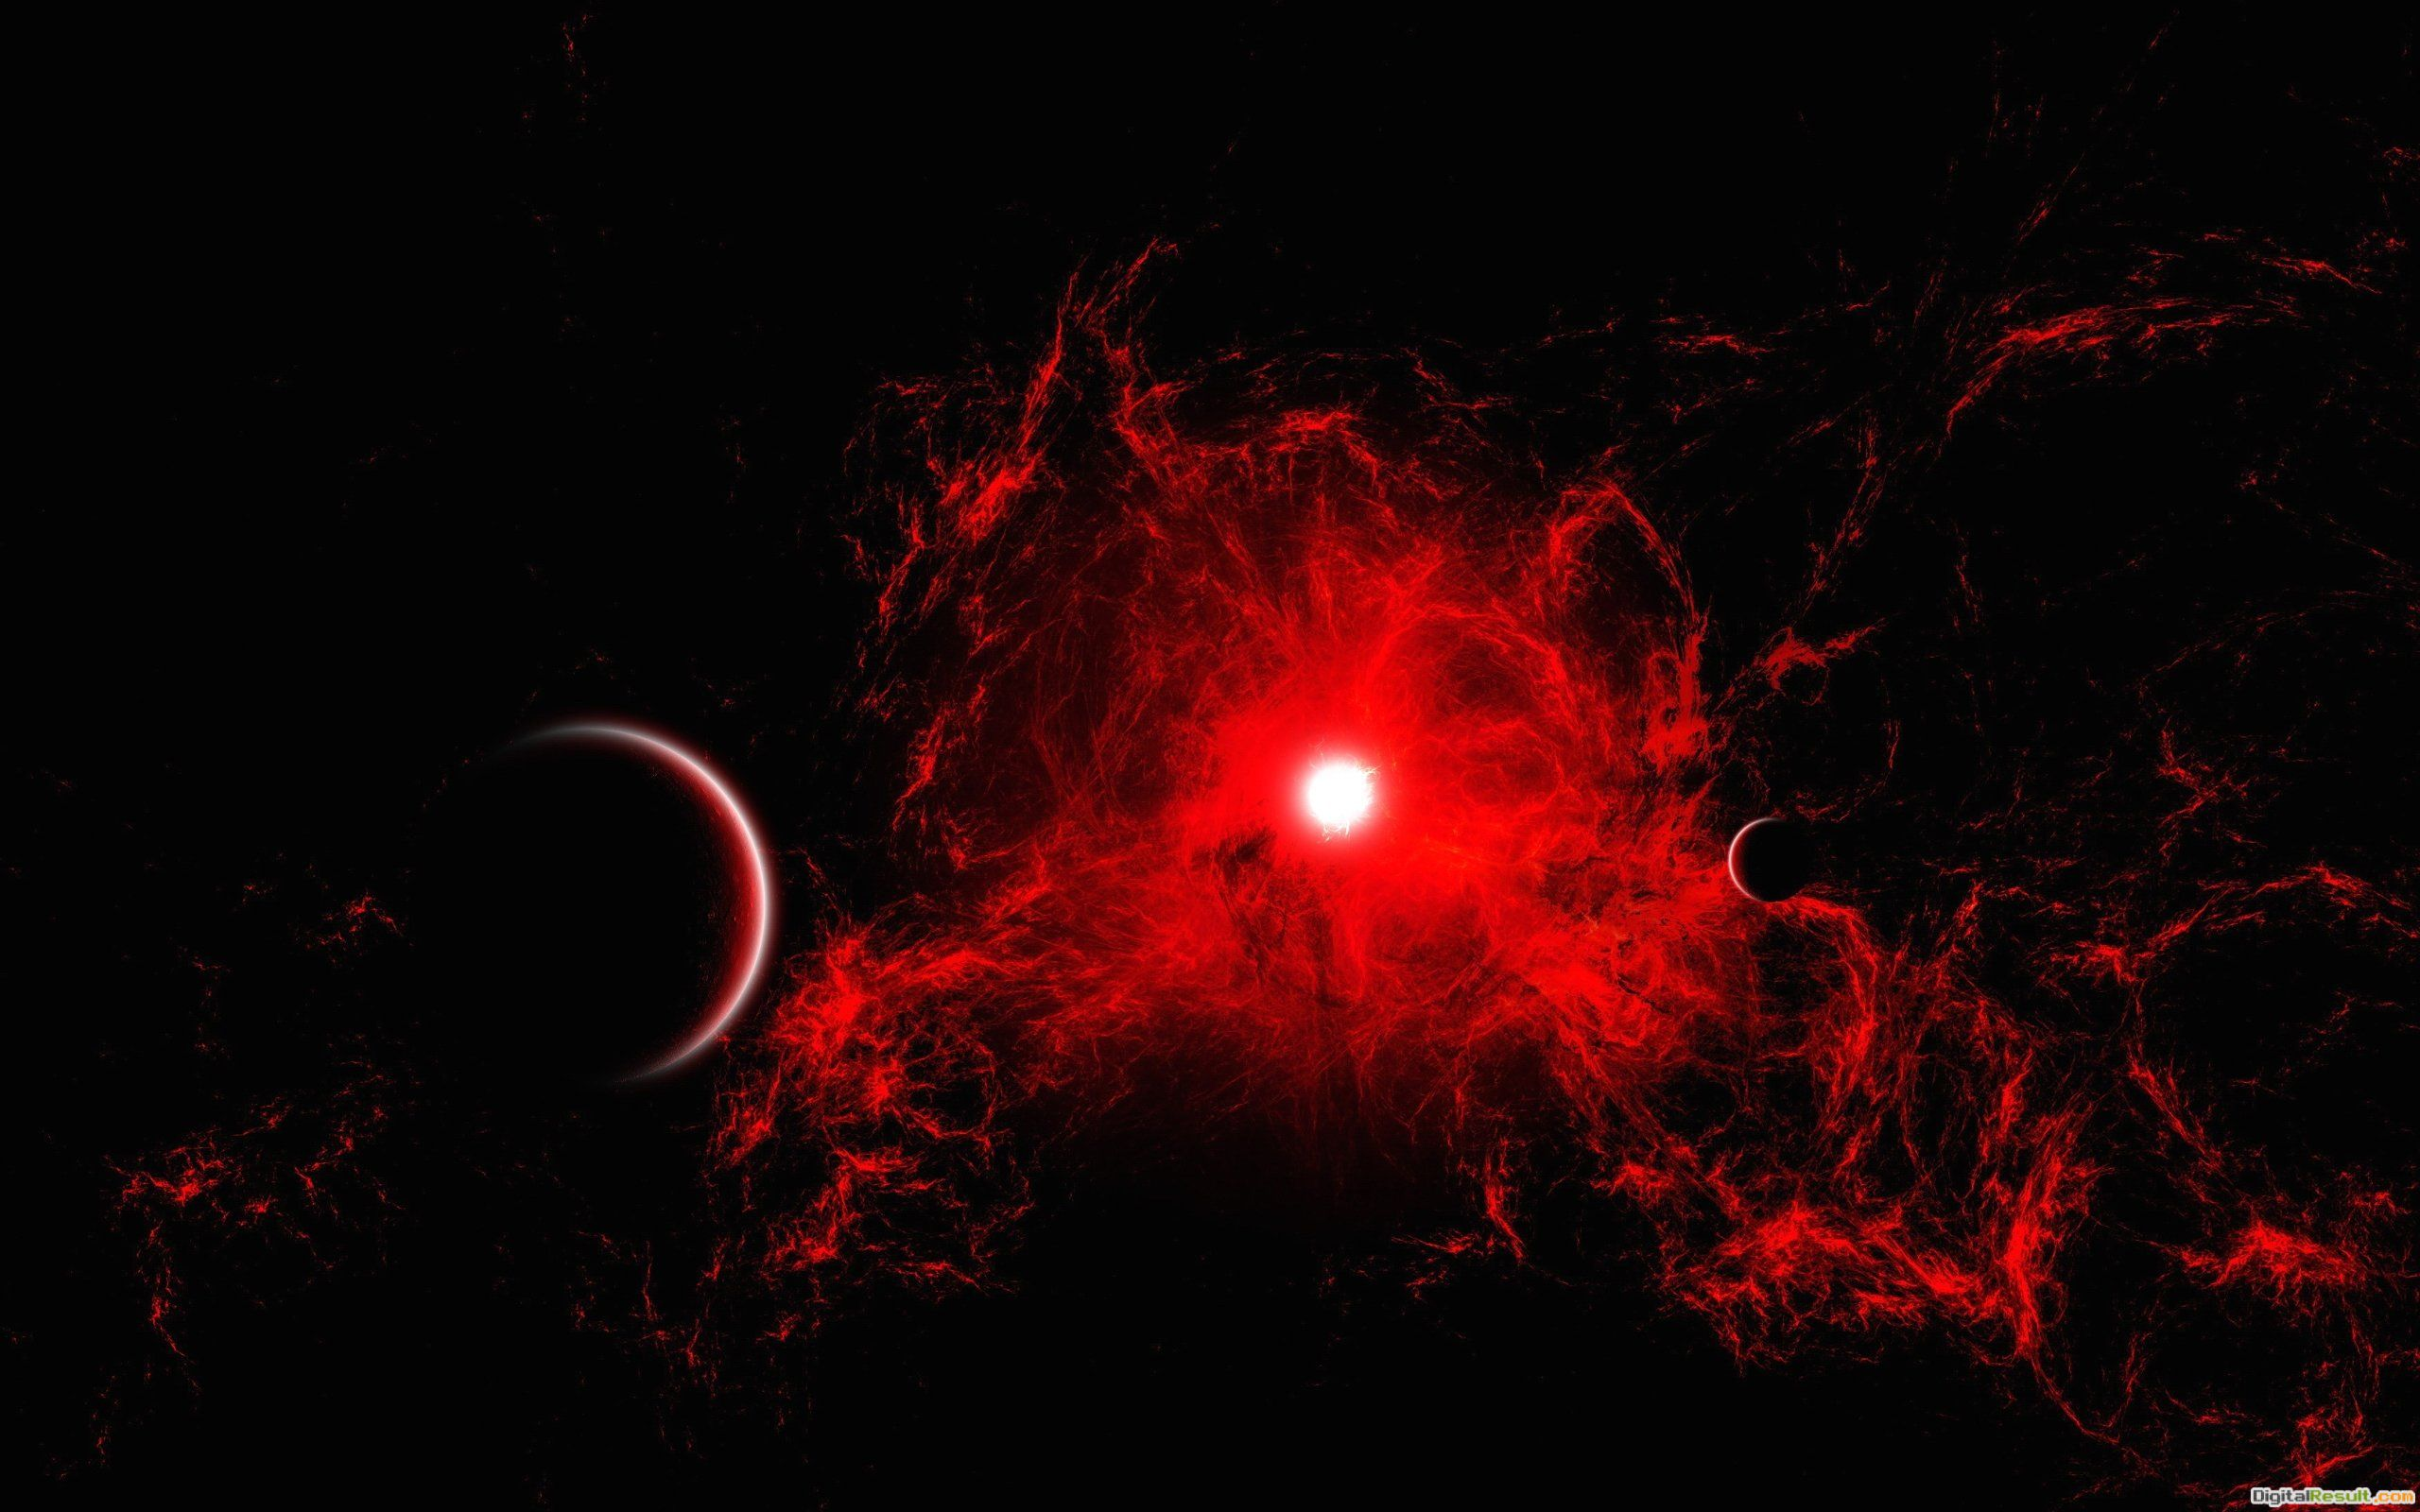 Planet red space sun wallpaper | 2560x1600 | 437997 | WallpaperUP 1997